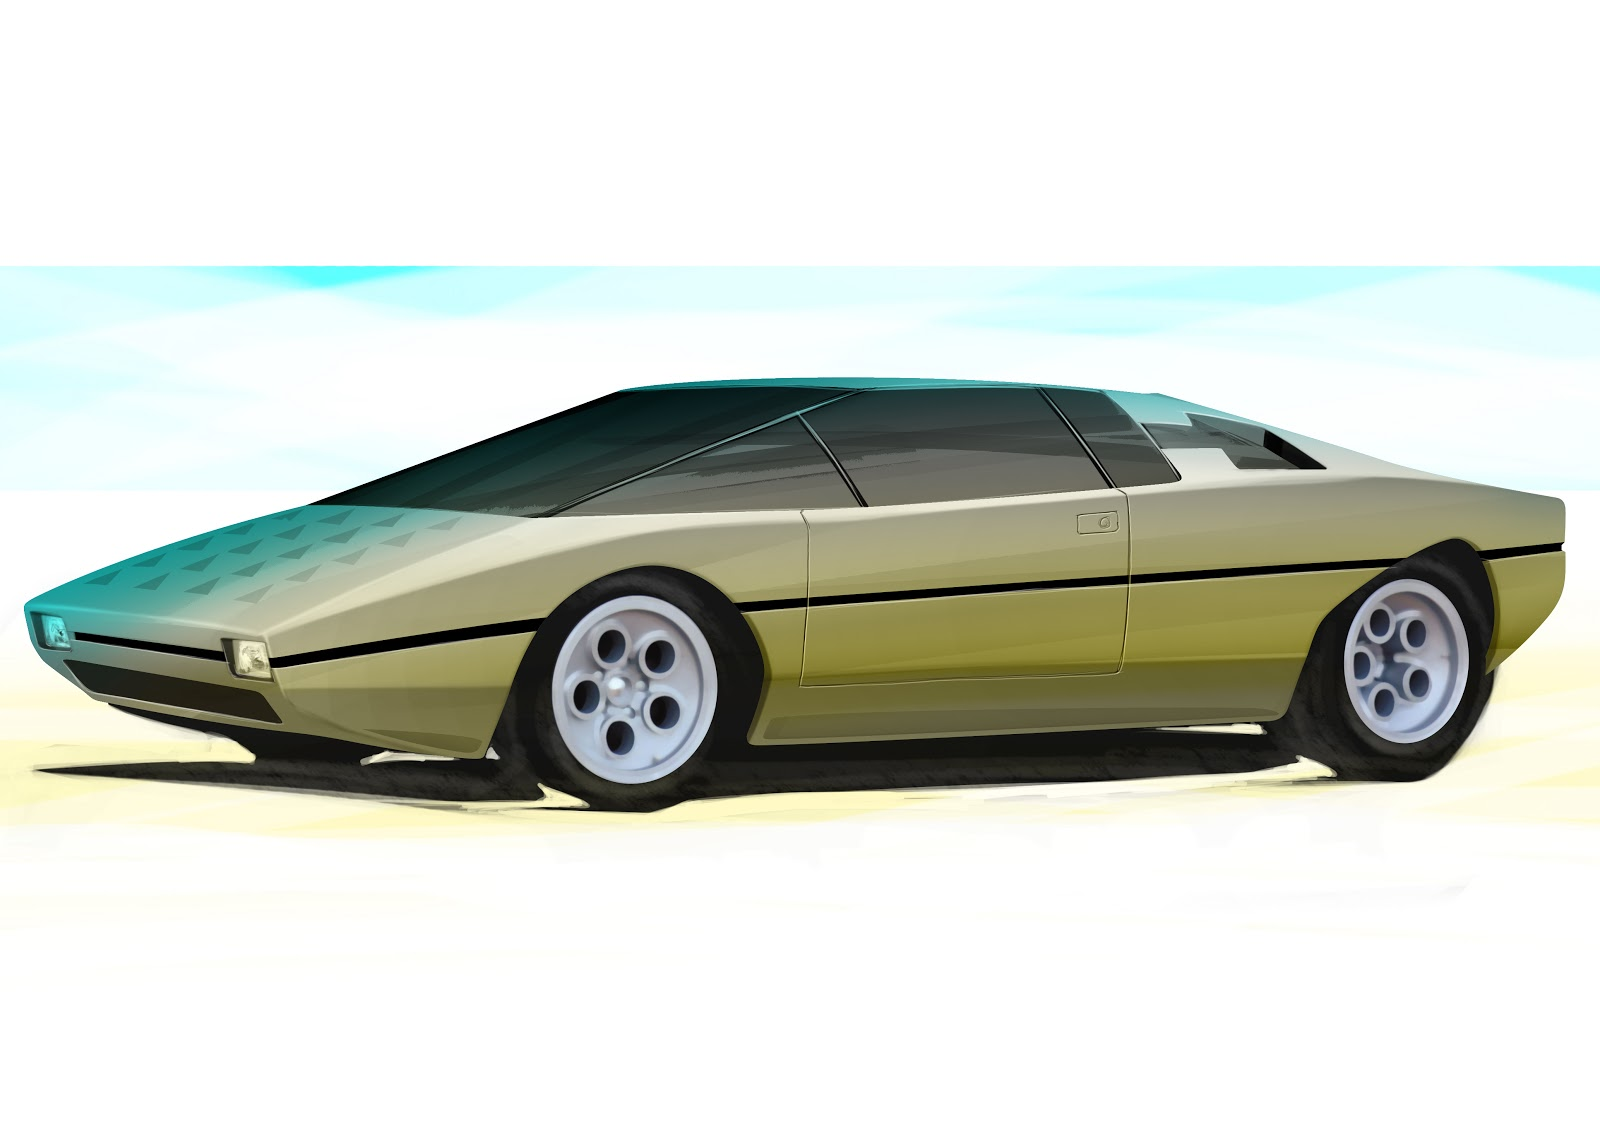 Lamborghini bravo photo - 3